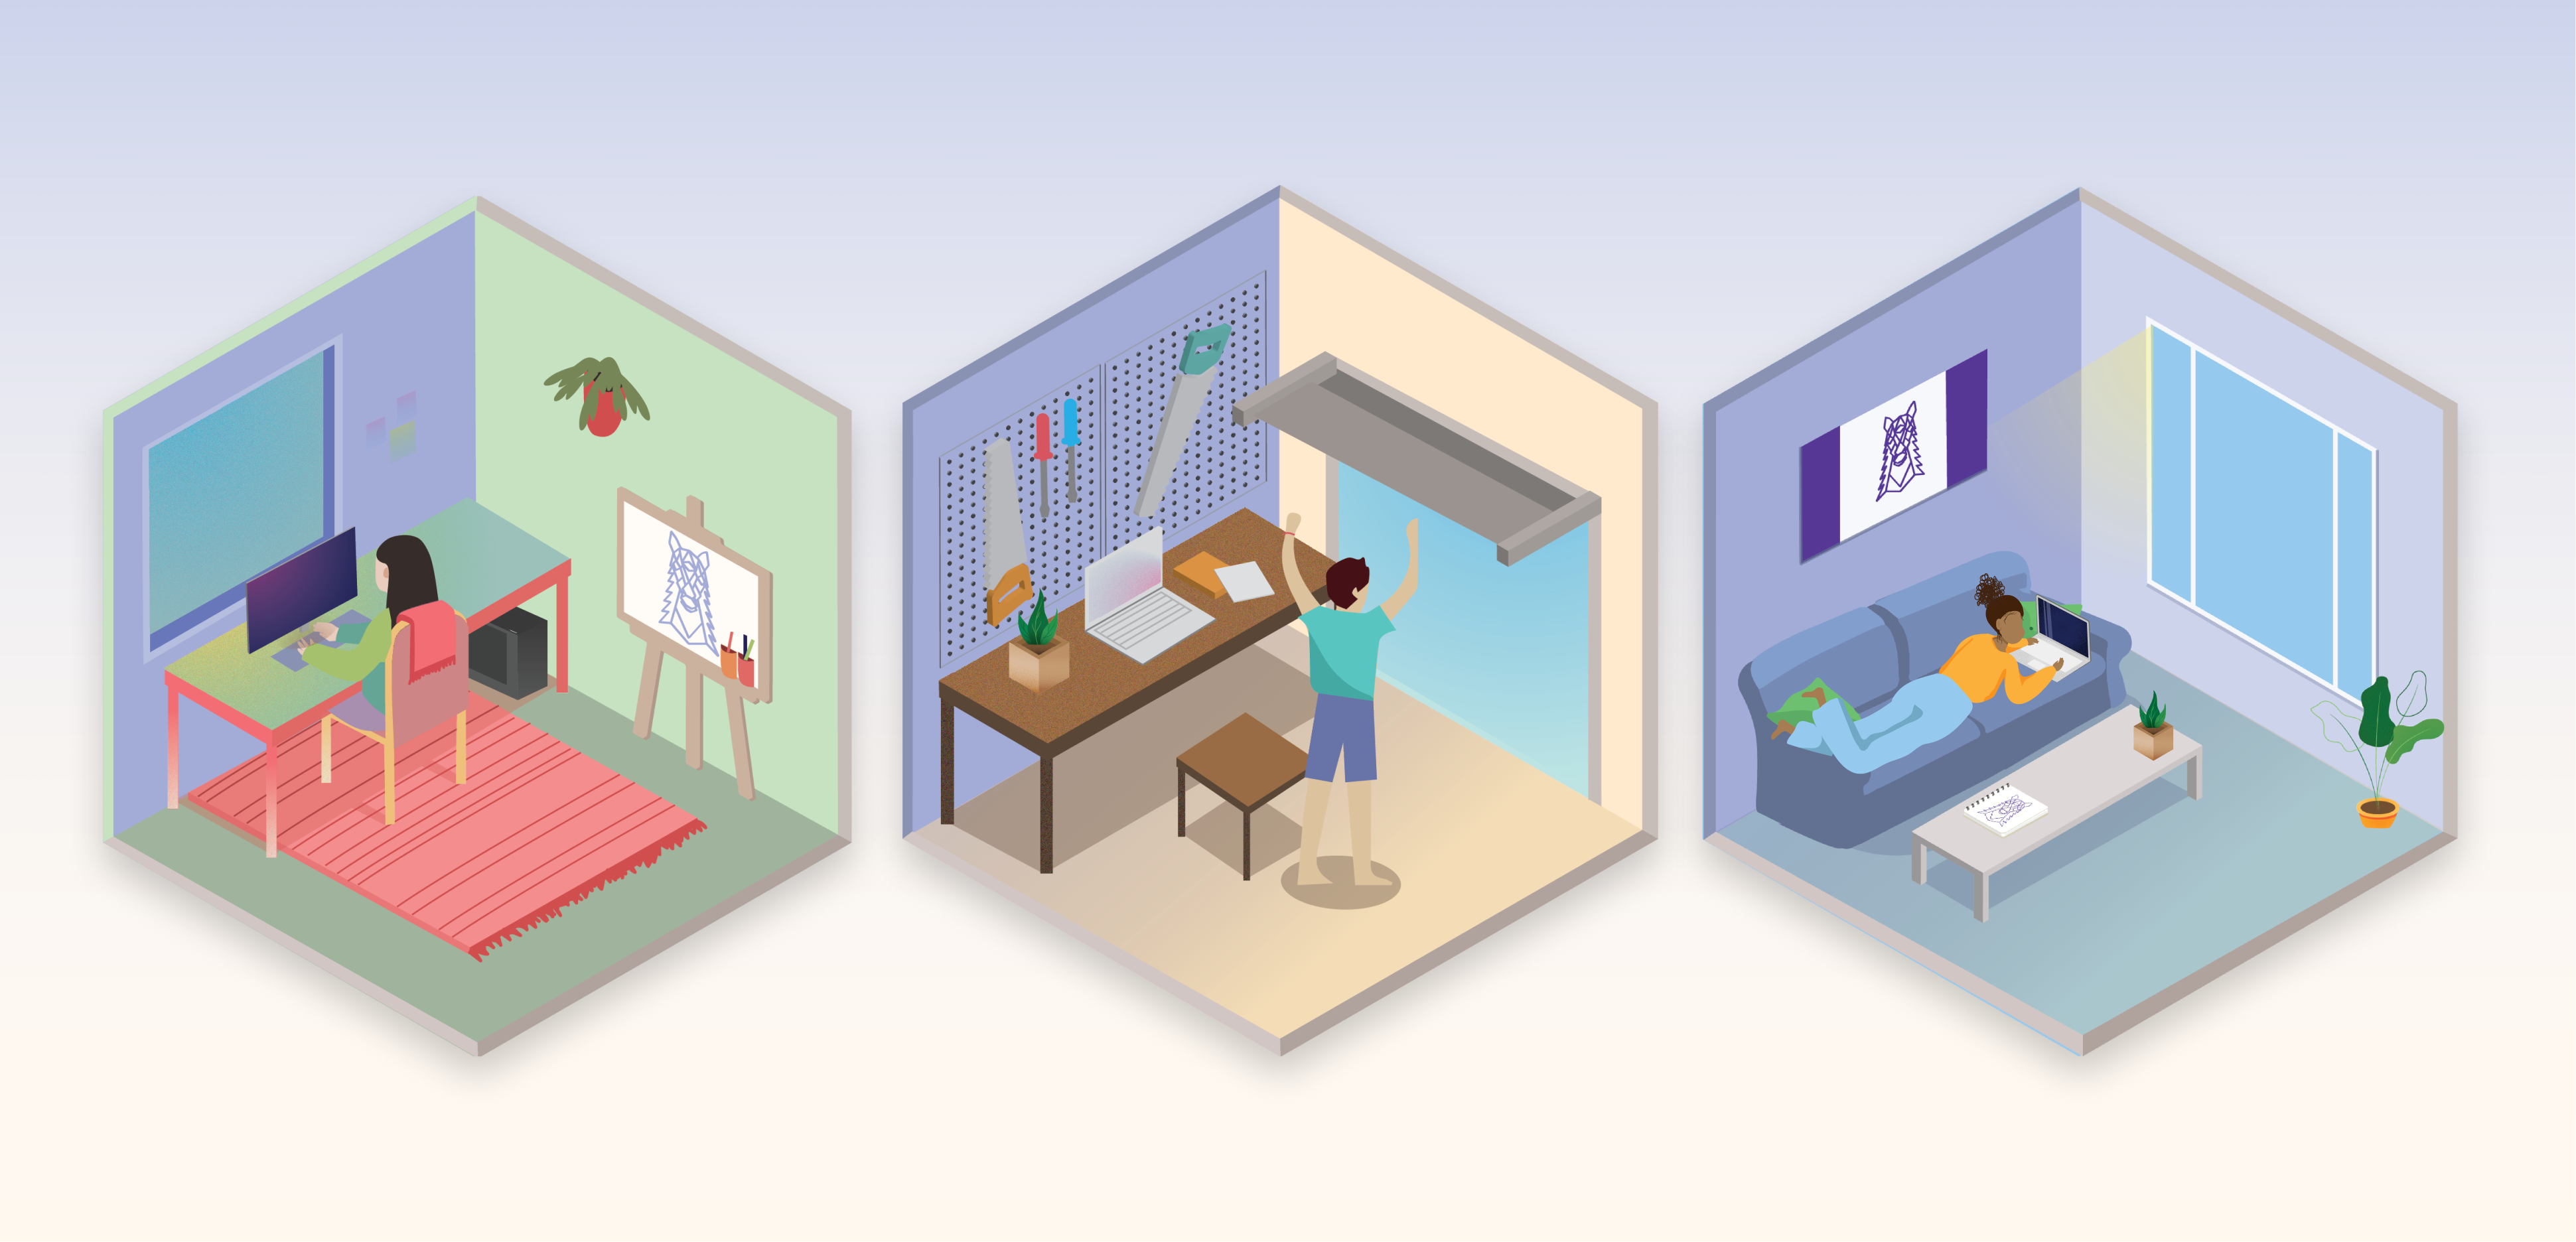 3 illustrations of isometric rooms